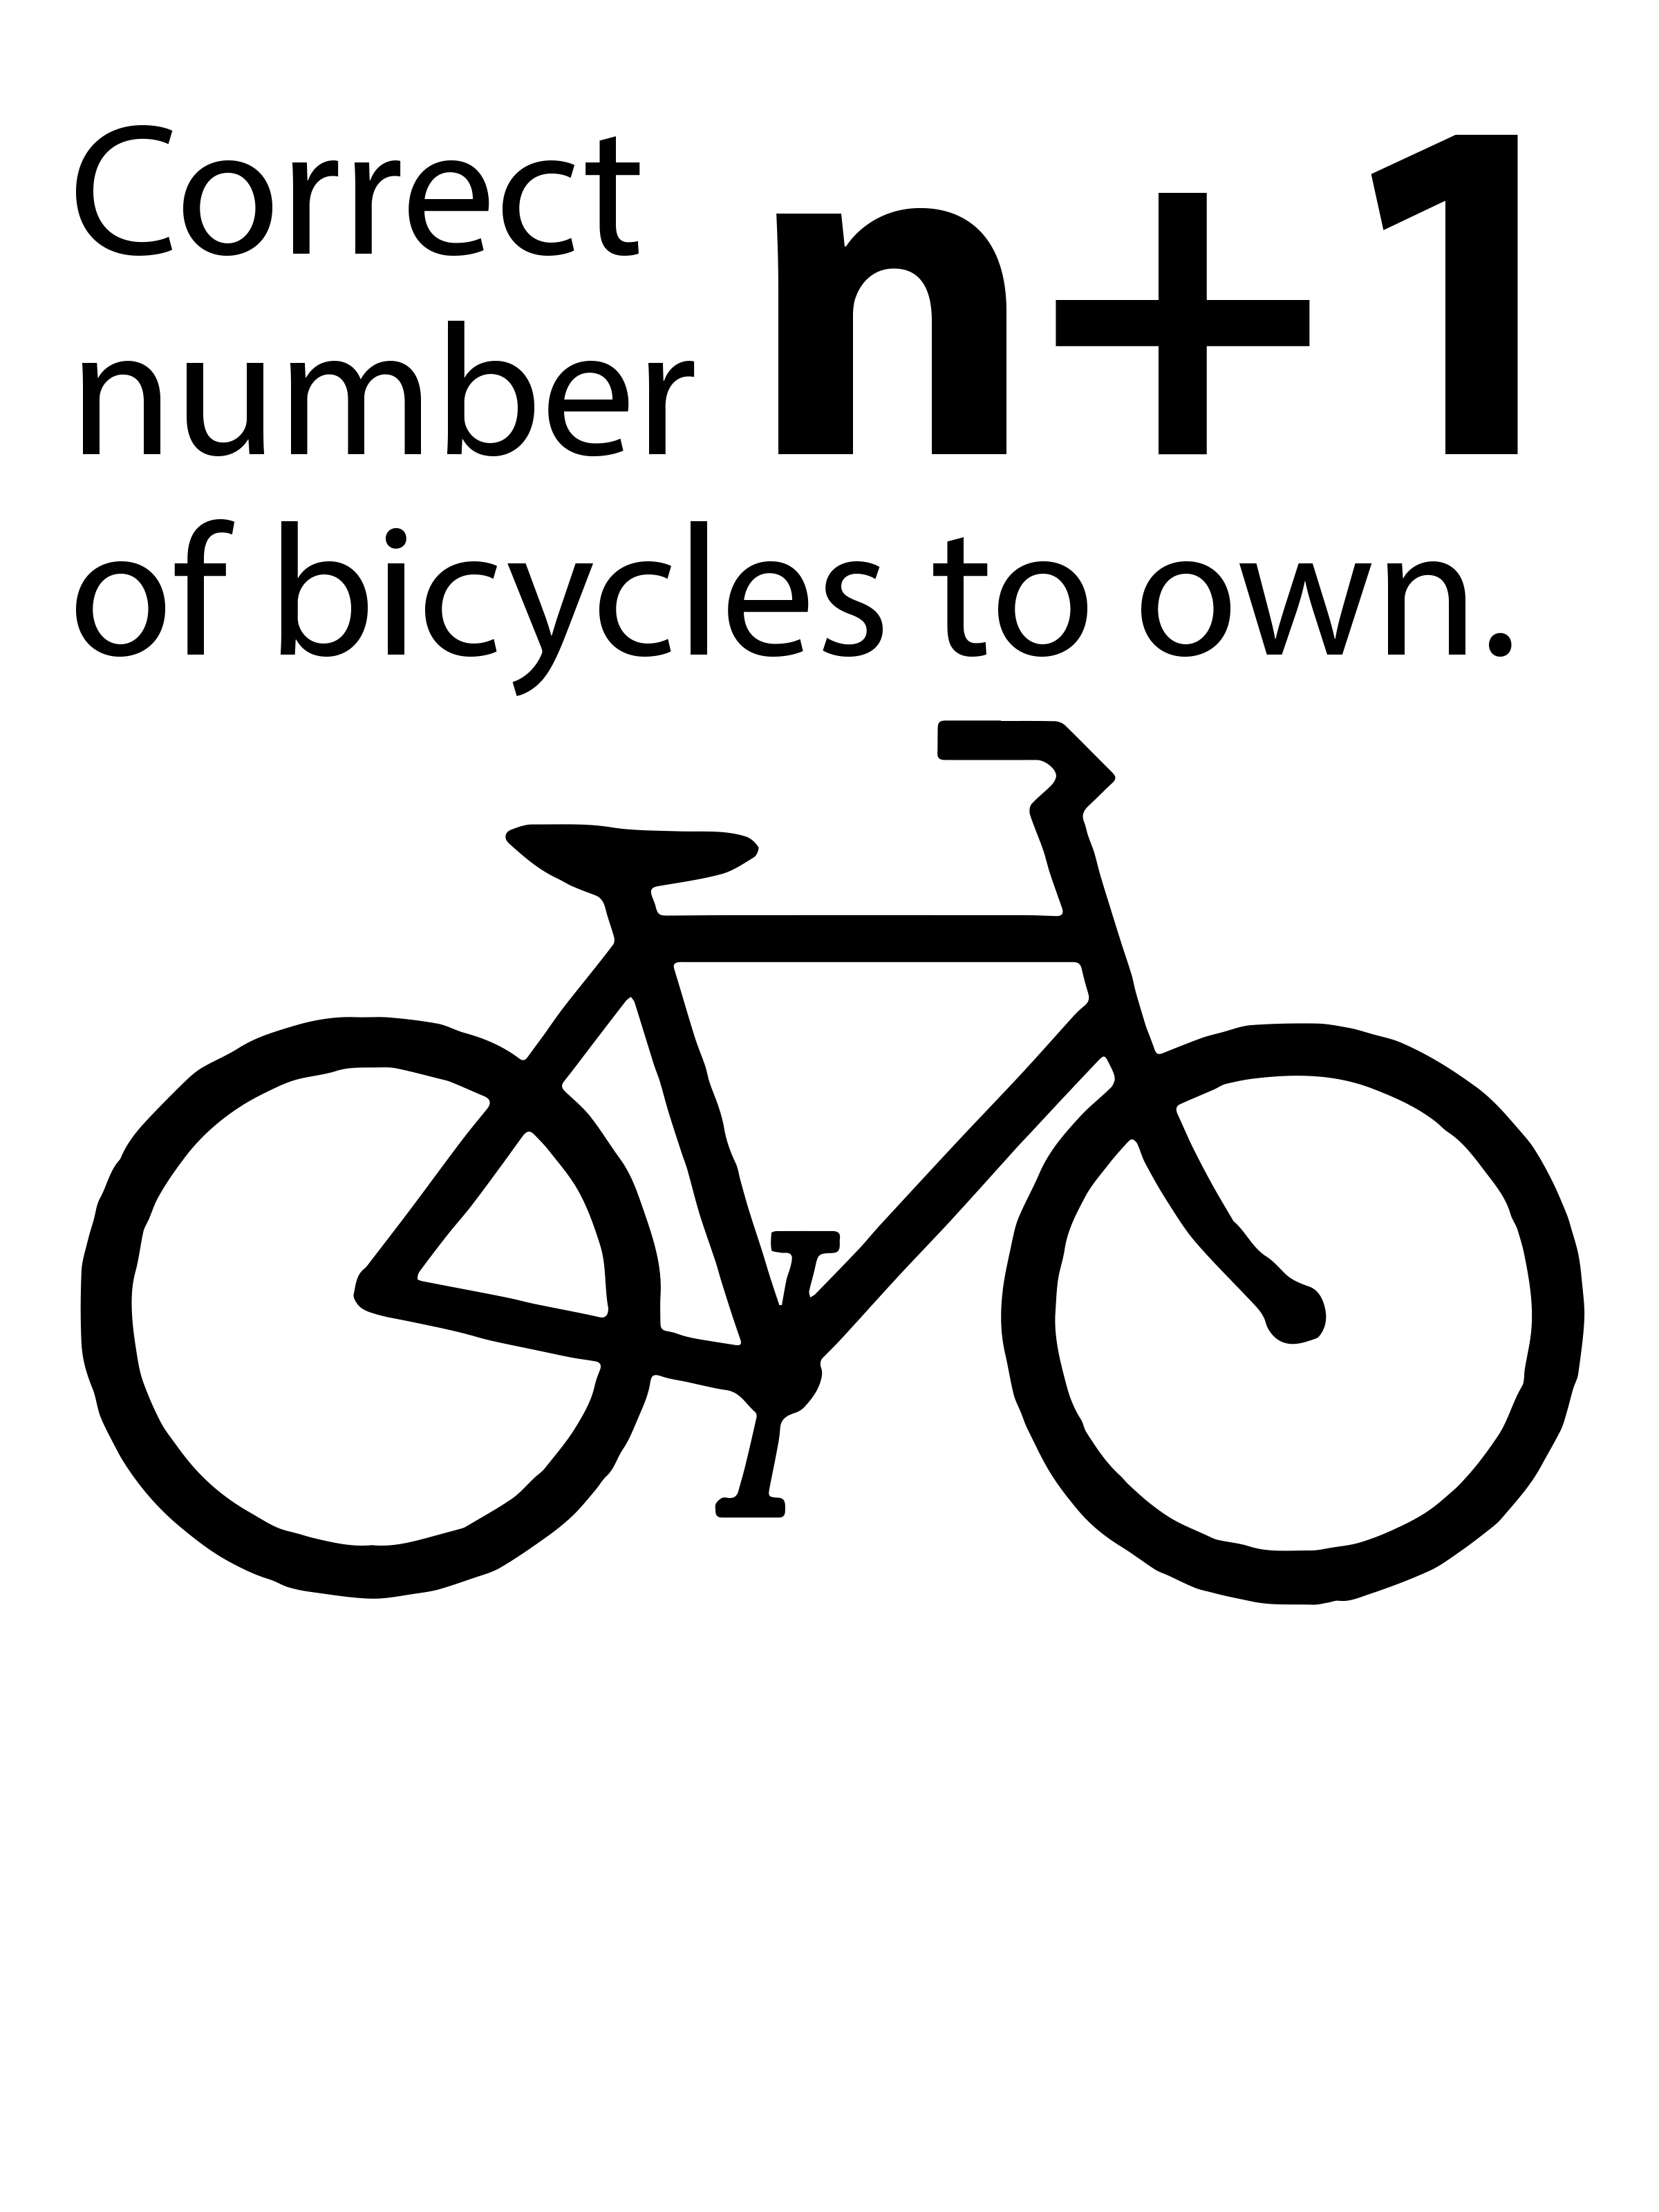 0255 – Correct Number of Bicycles